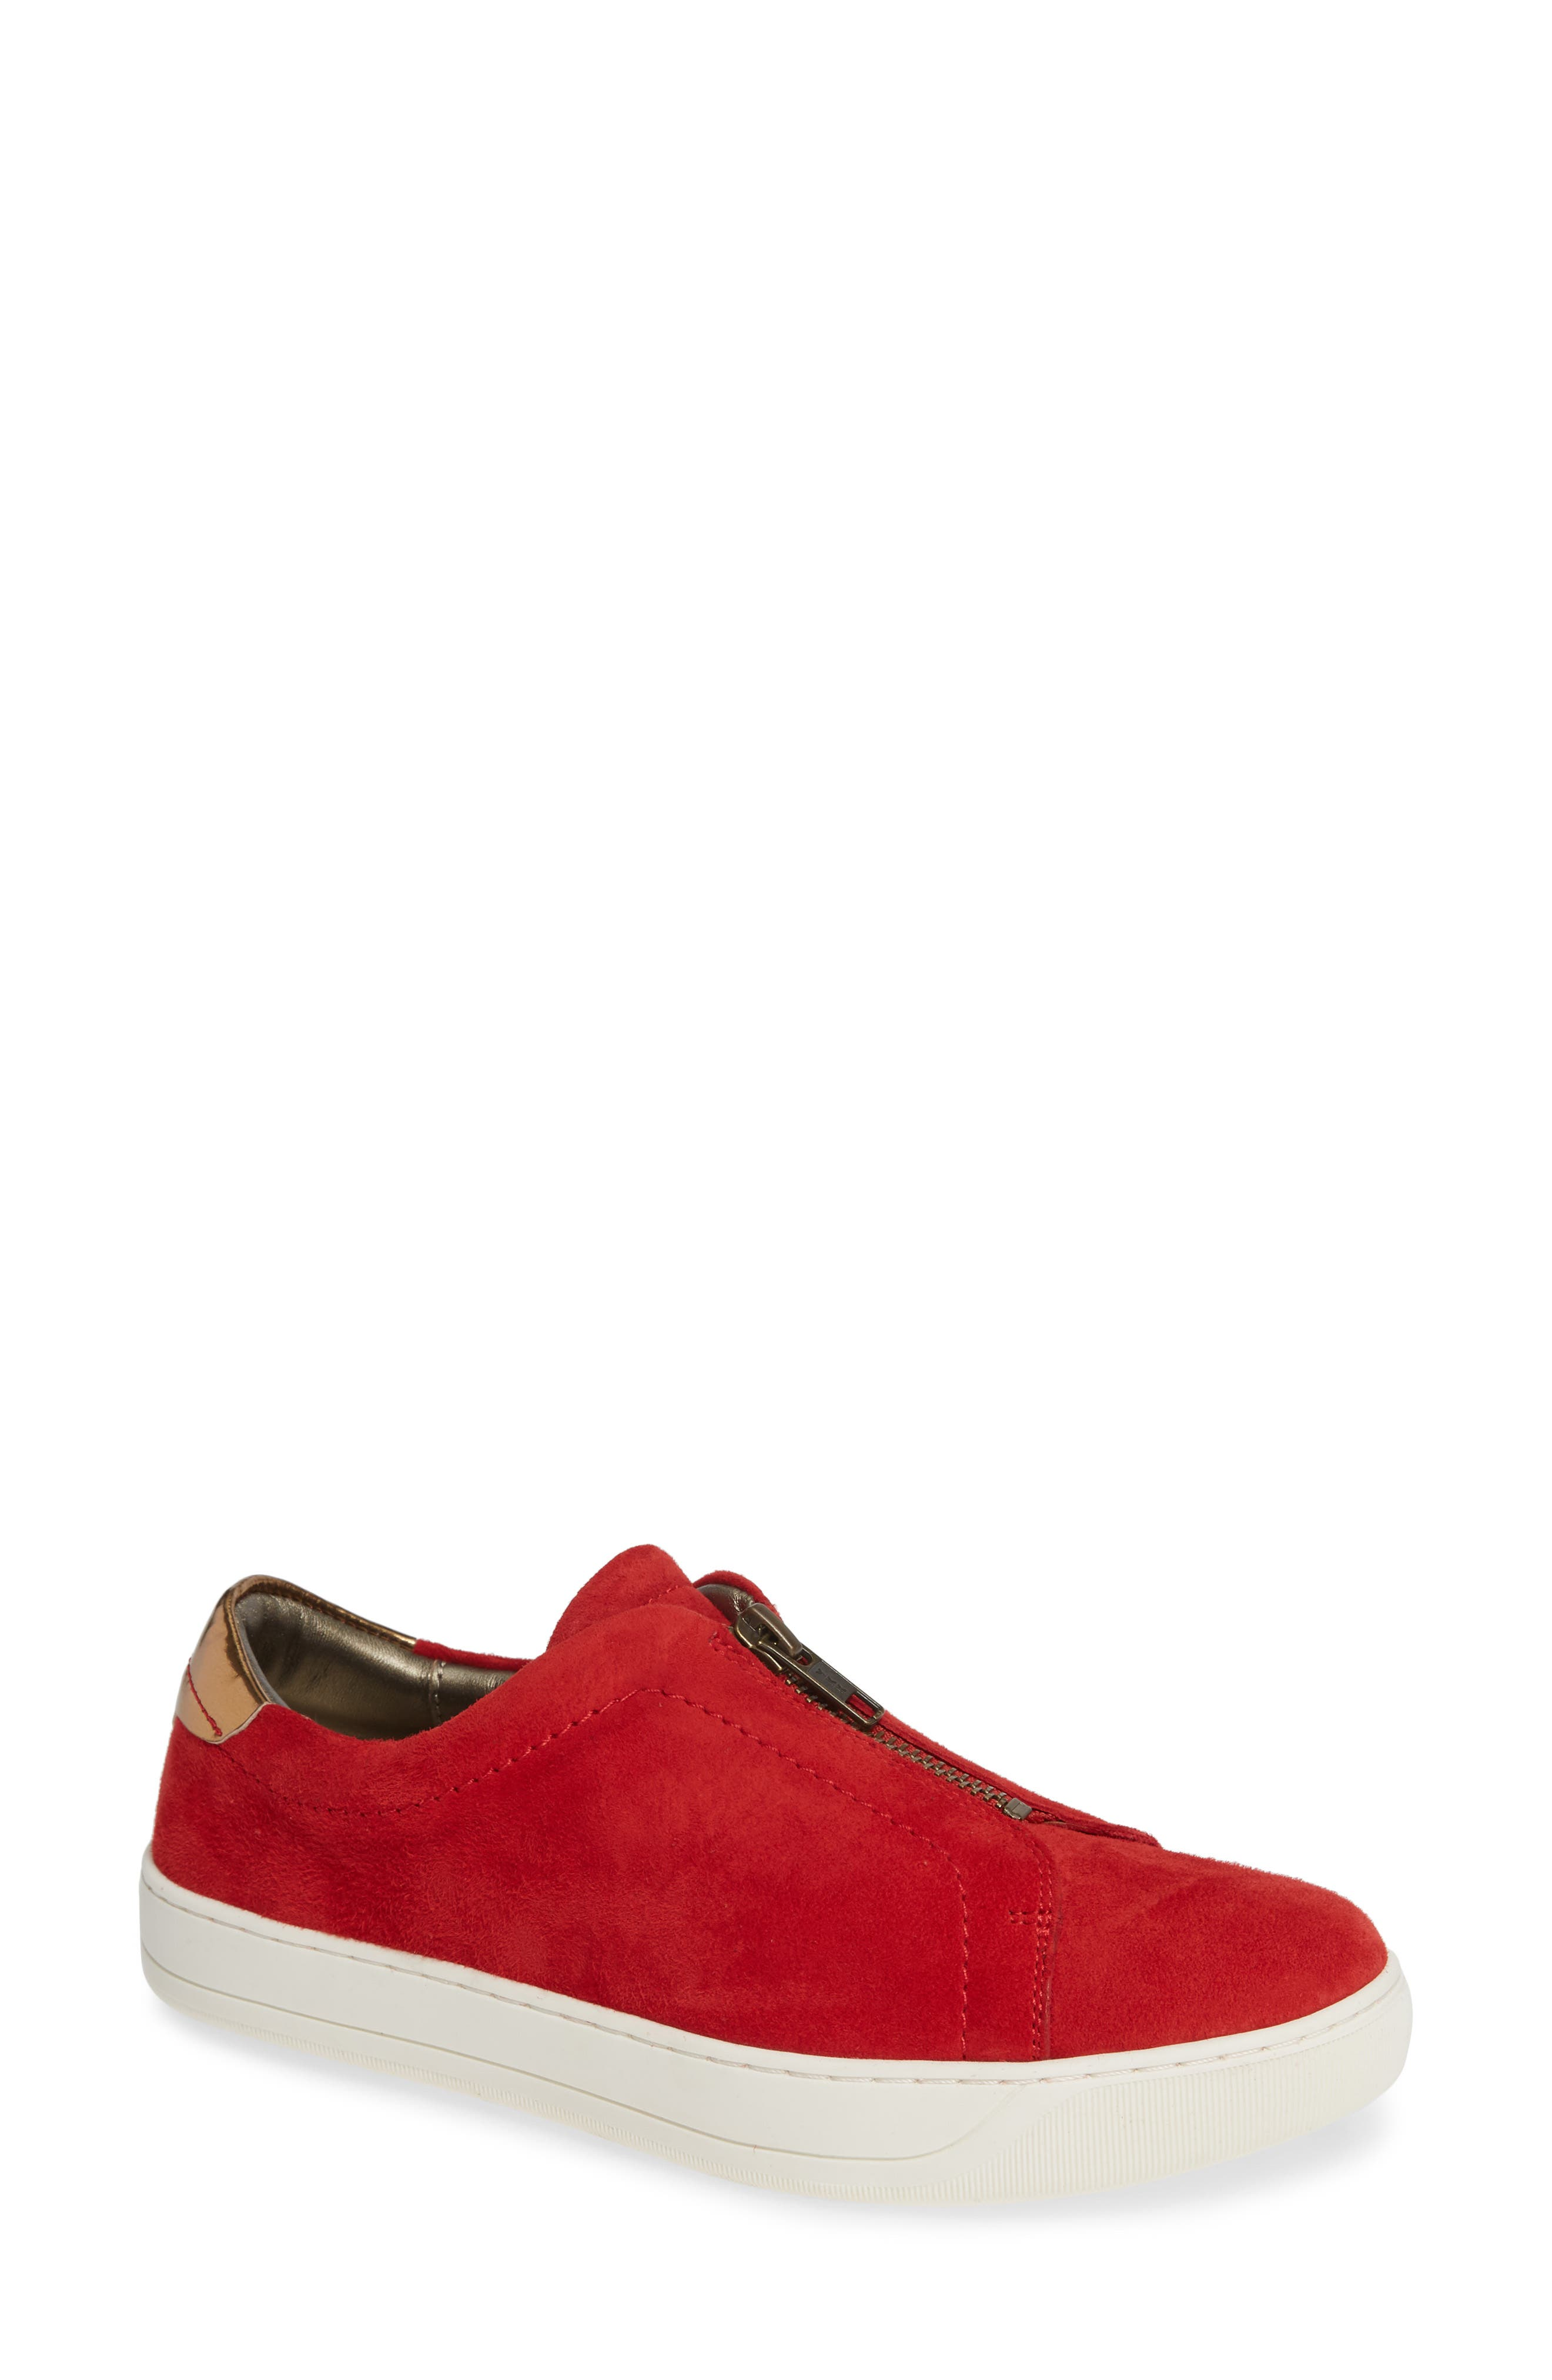 Emma Sneaker,                         Main,                         color, RED SUEDE